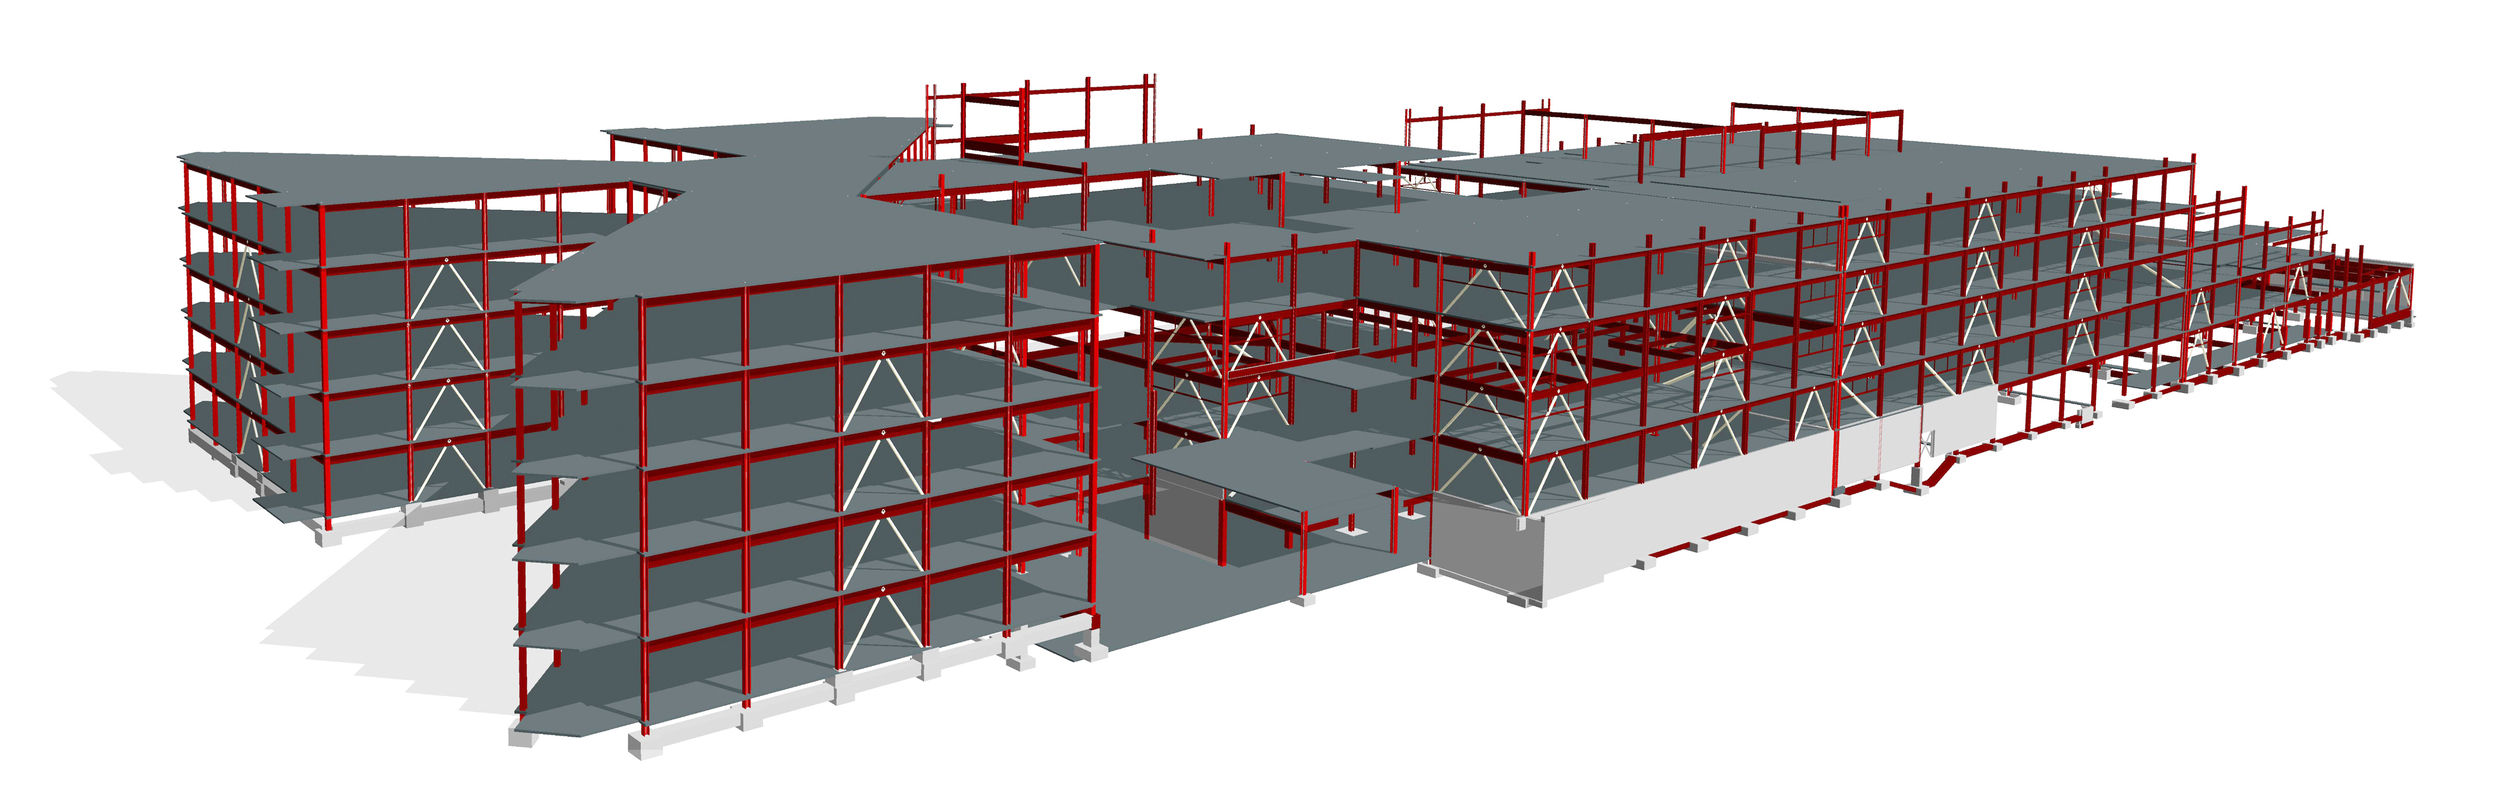 NMCSD_Structural Building 1.jpg